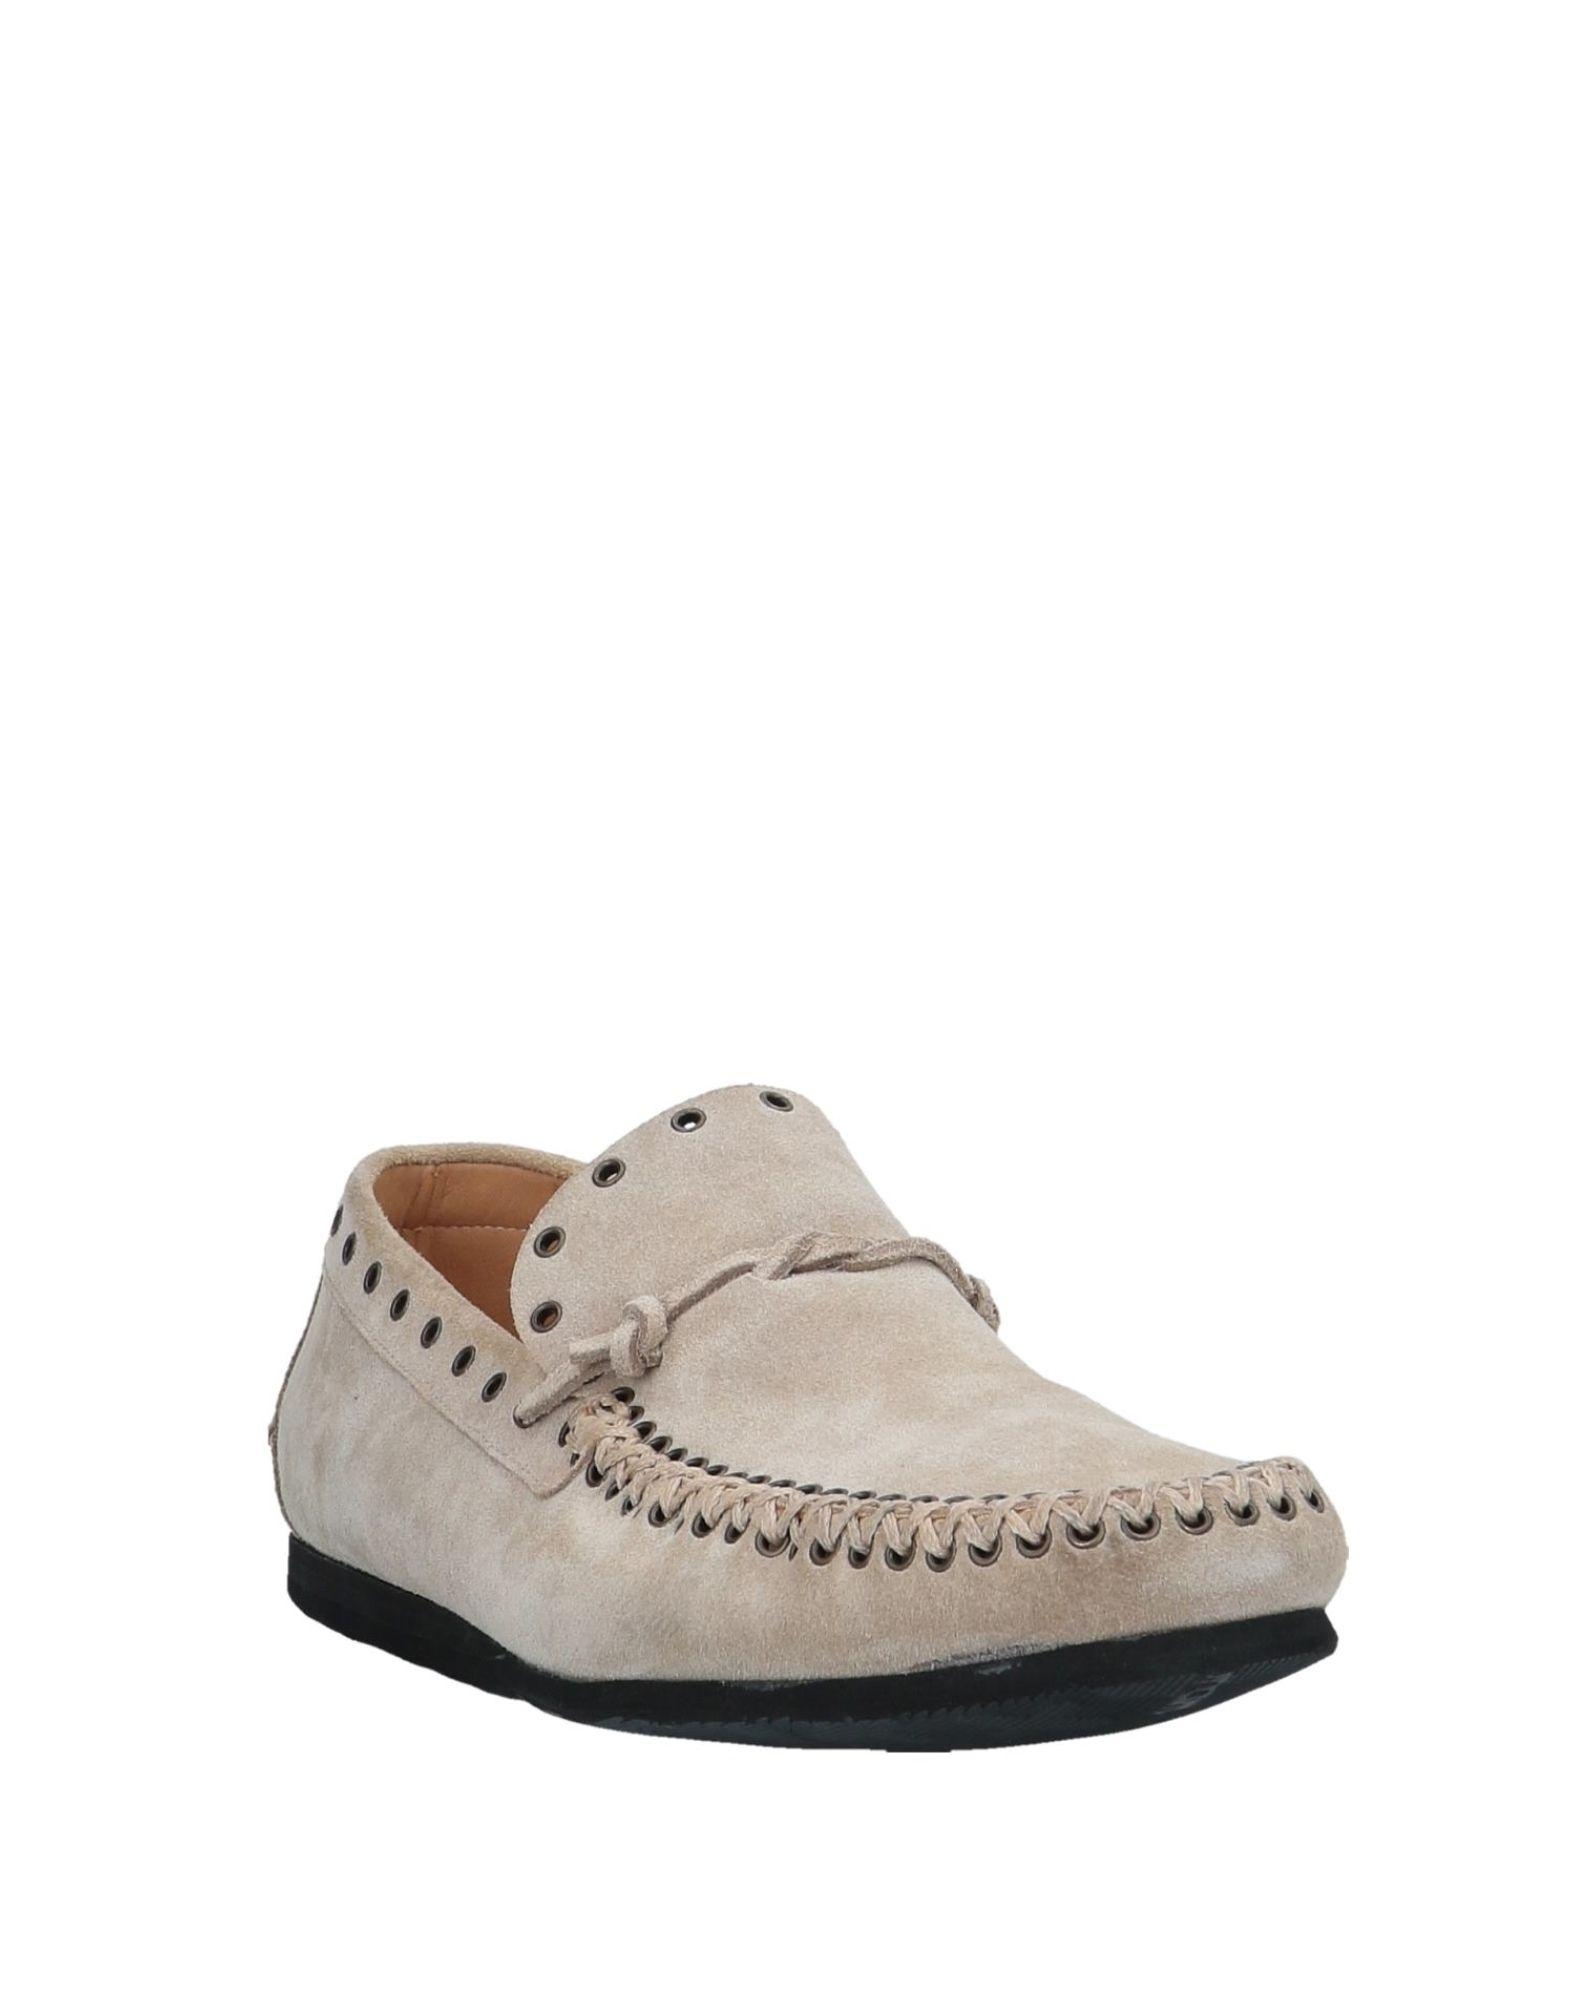 Mocasines Rust Mood de Ante de color Neutro para hombre